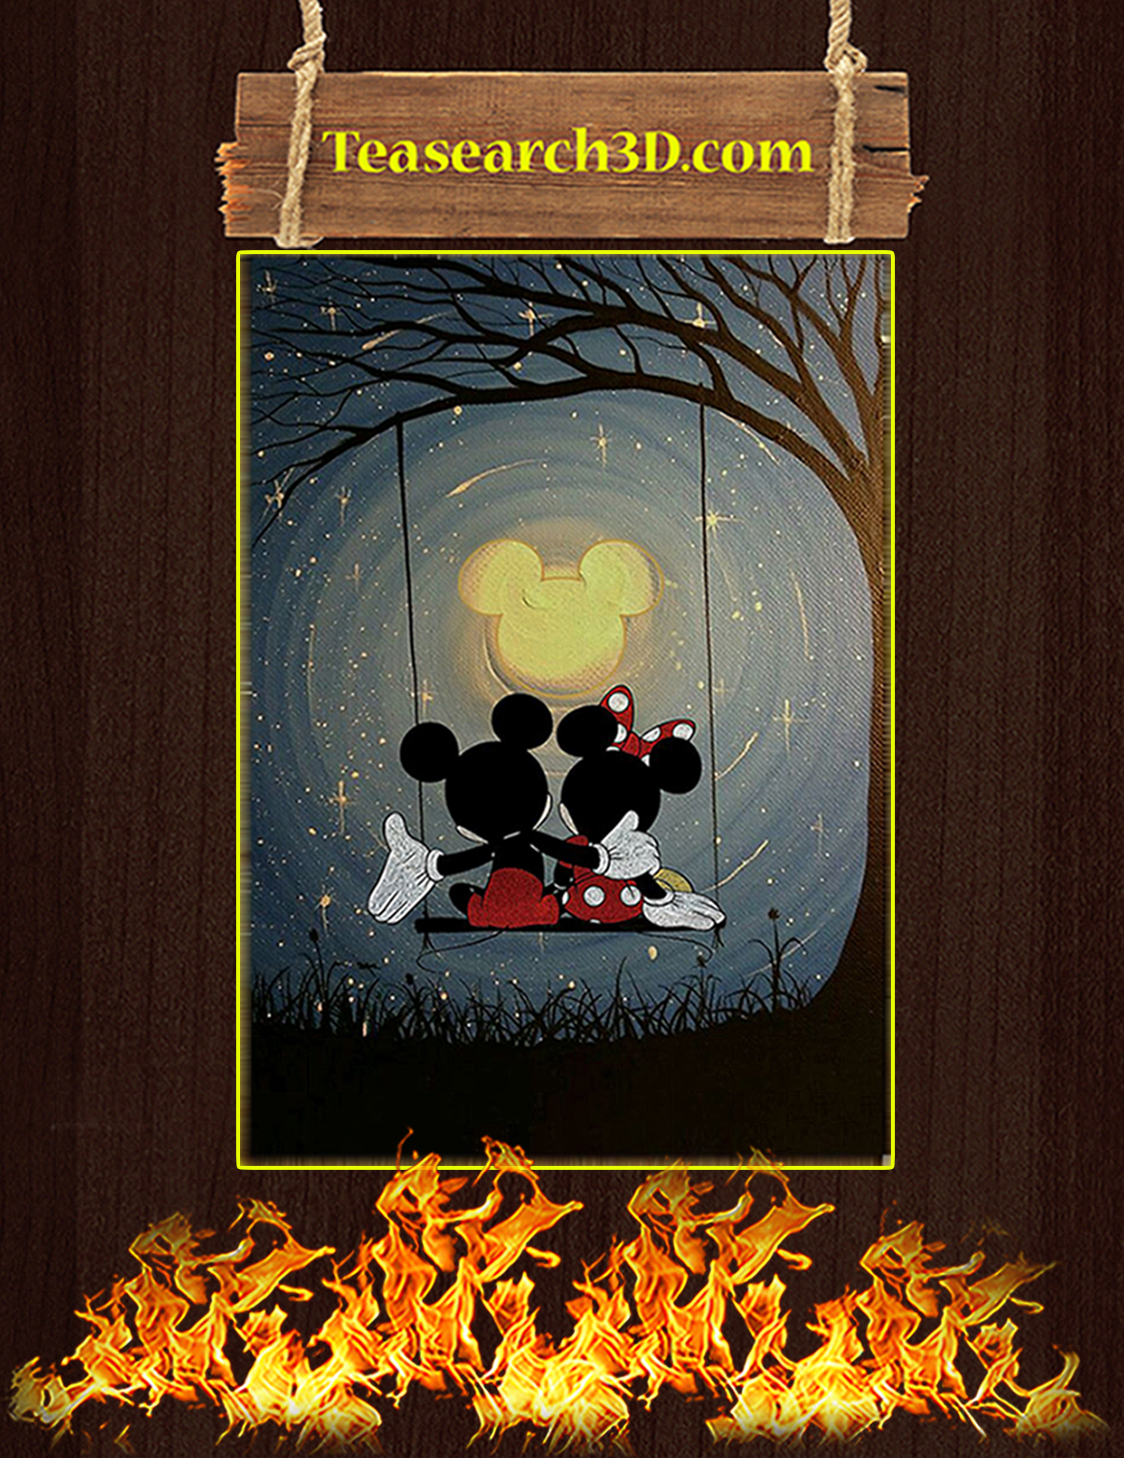 Mickey and minnie the moon poster A3